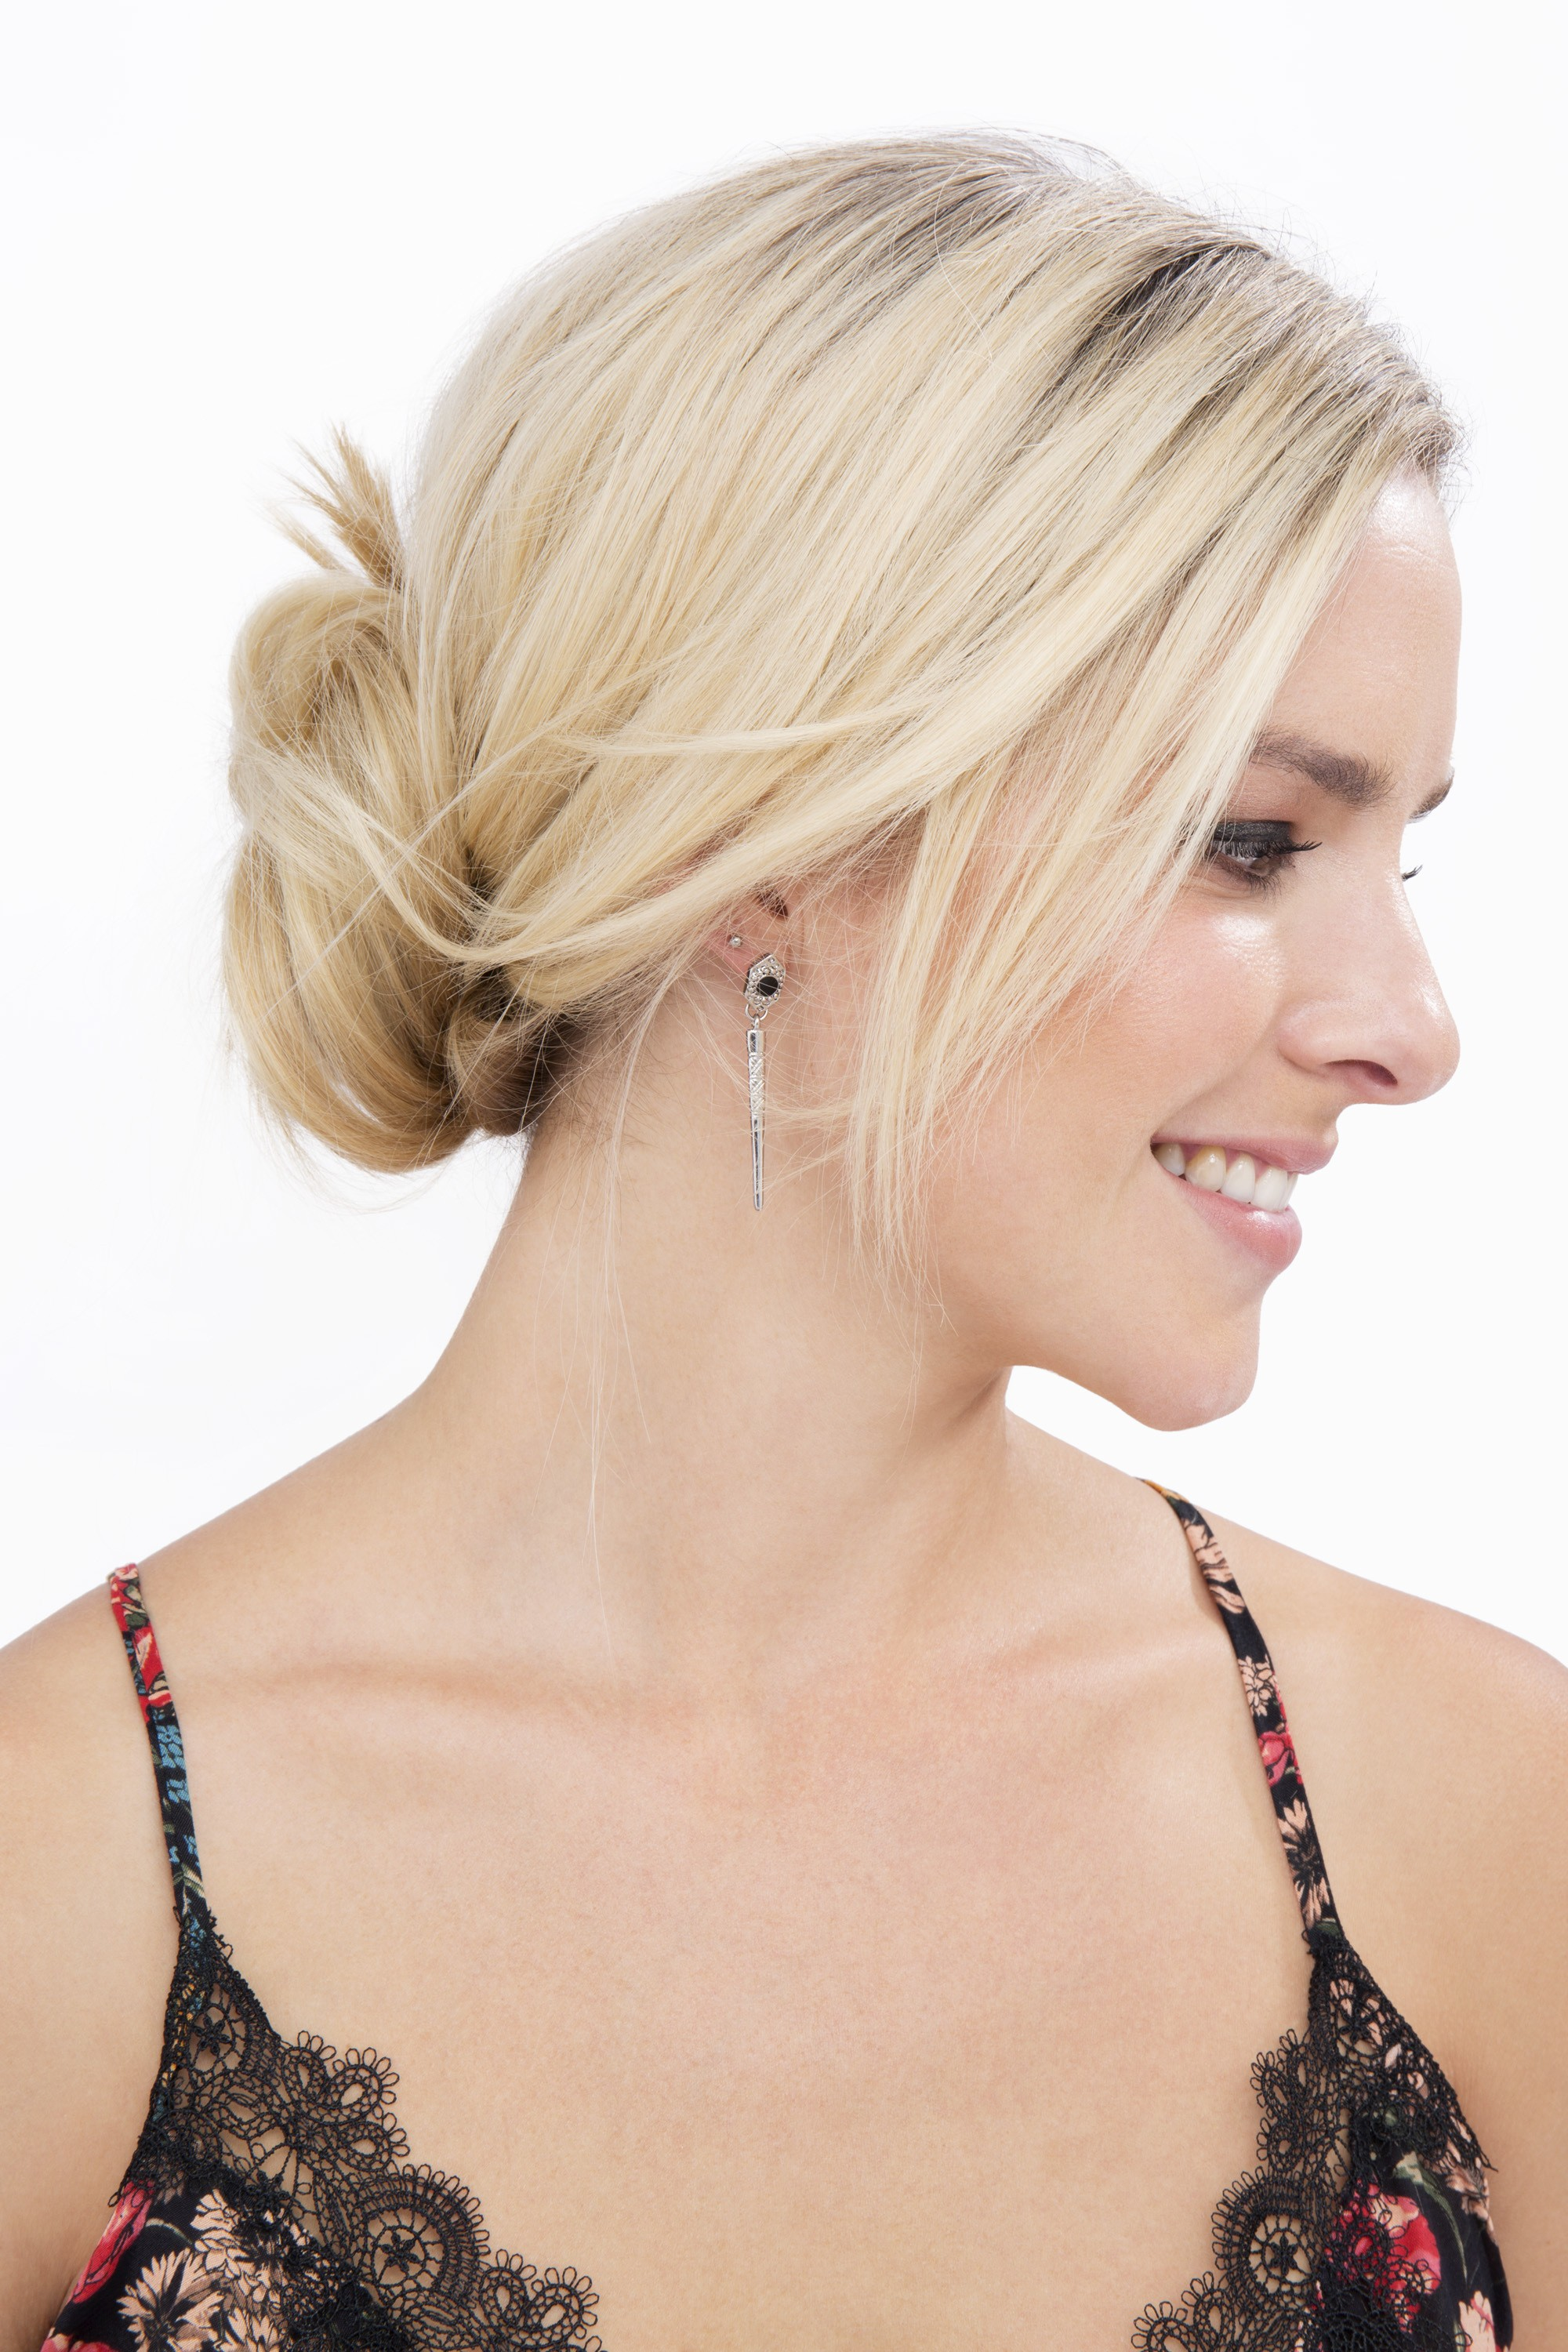 How to do a messy bun with long hair